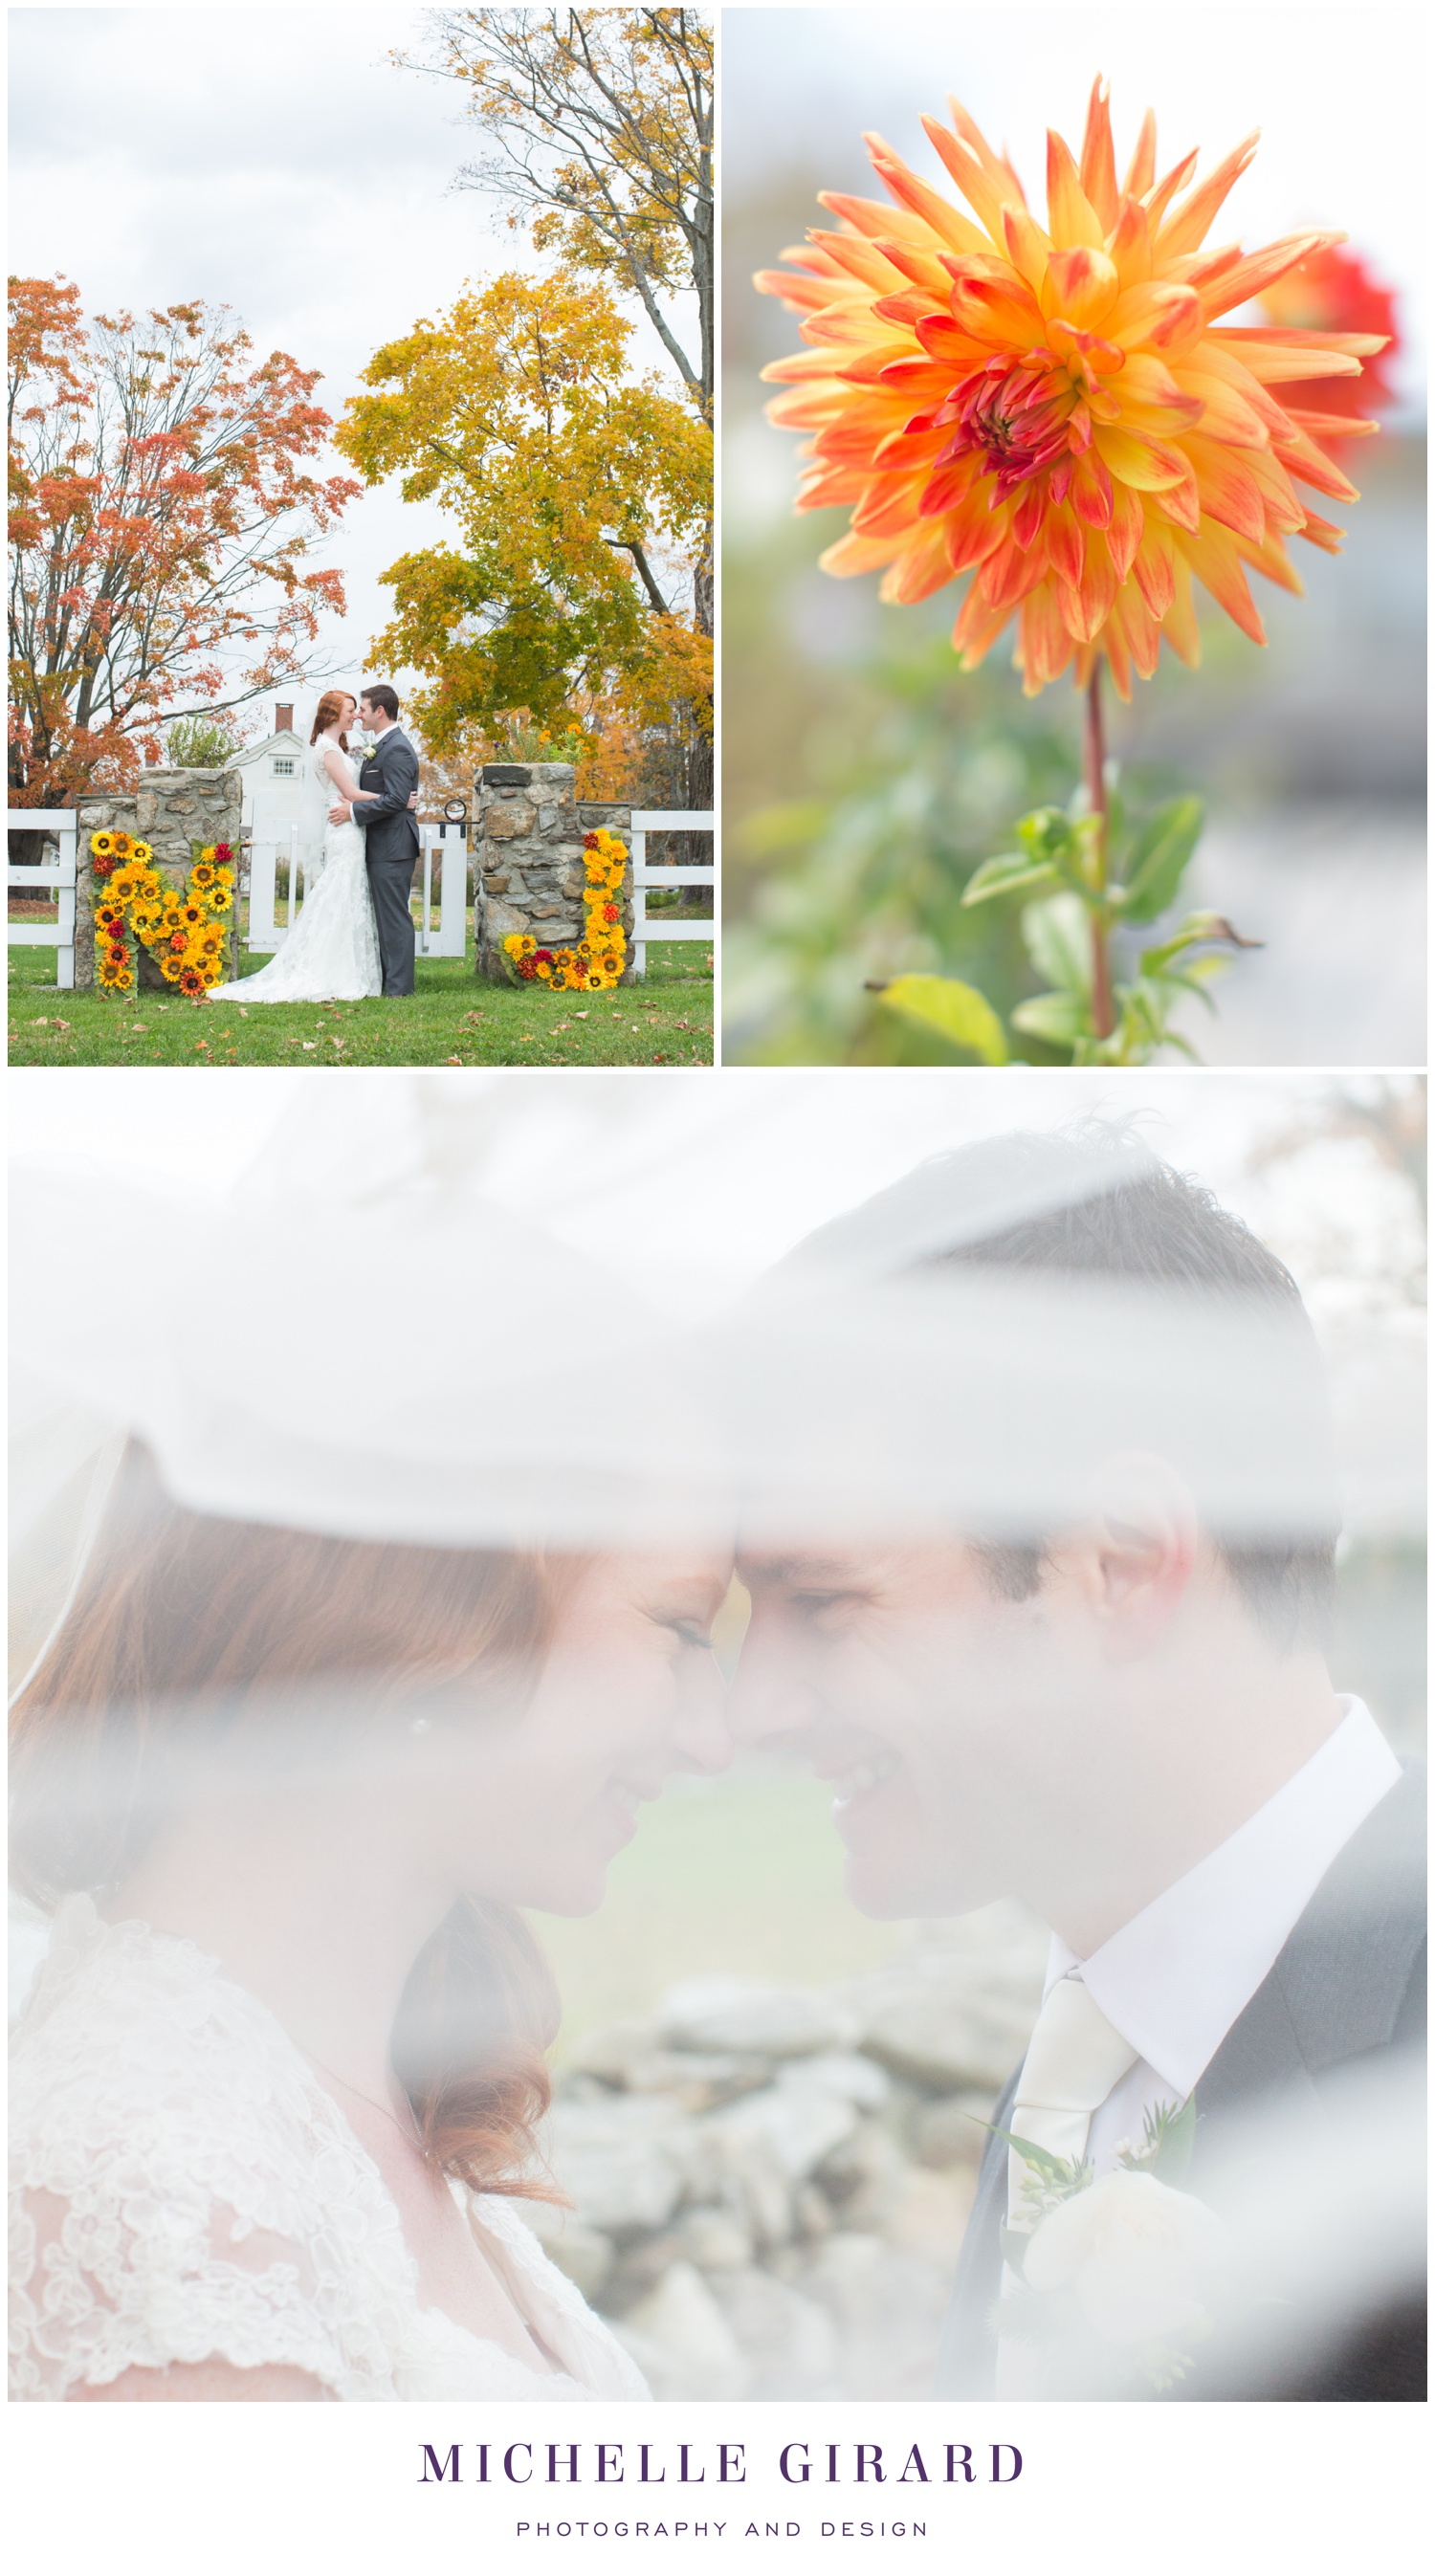 CandleLightFarms_FallRusticWedding_MichelleGirardPhotography16.jpg